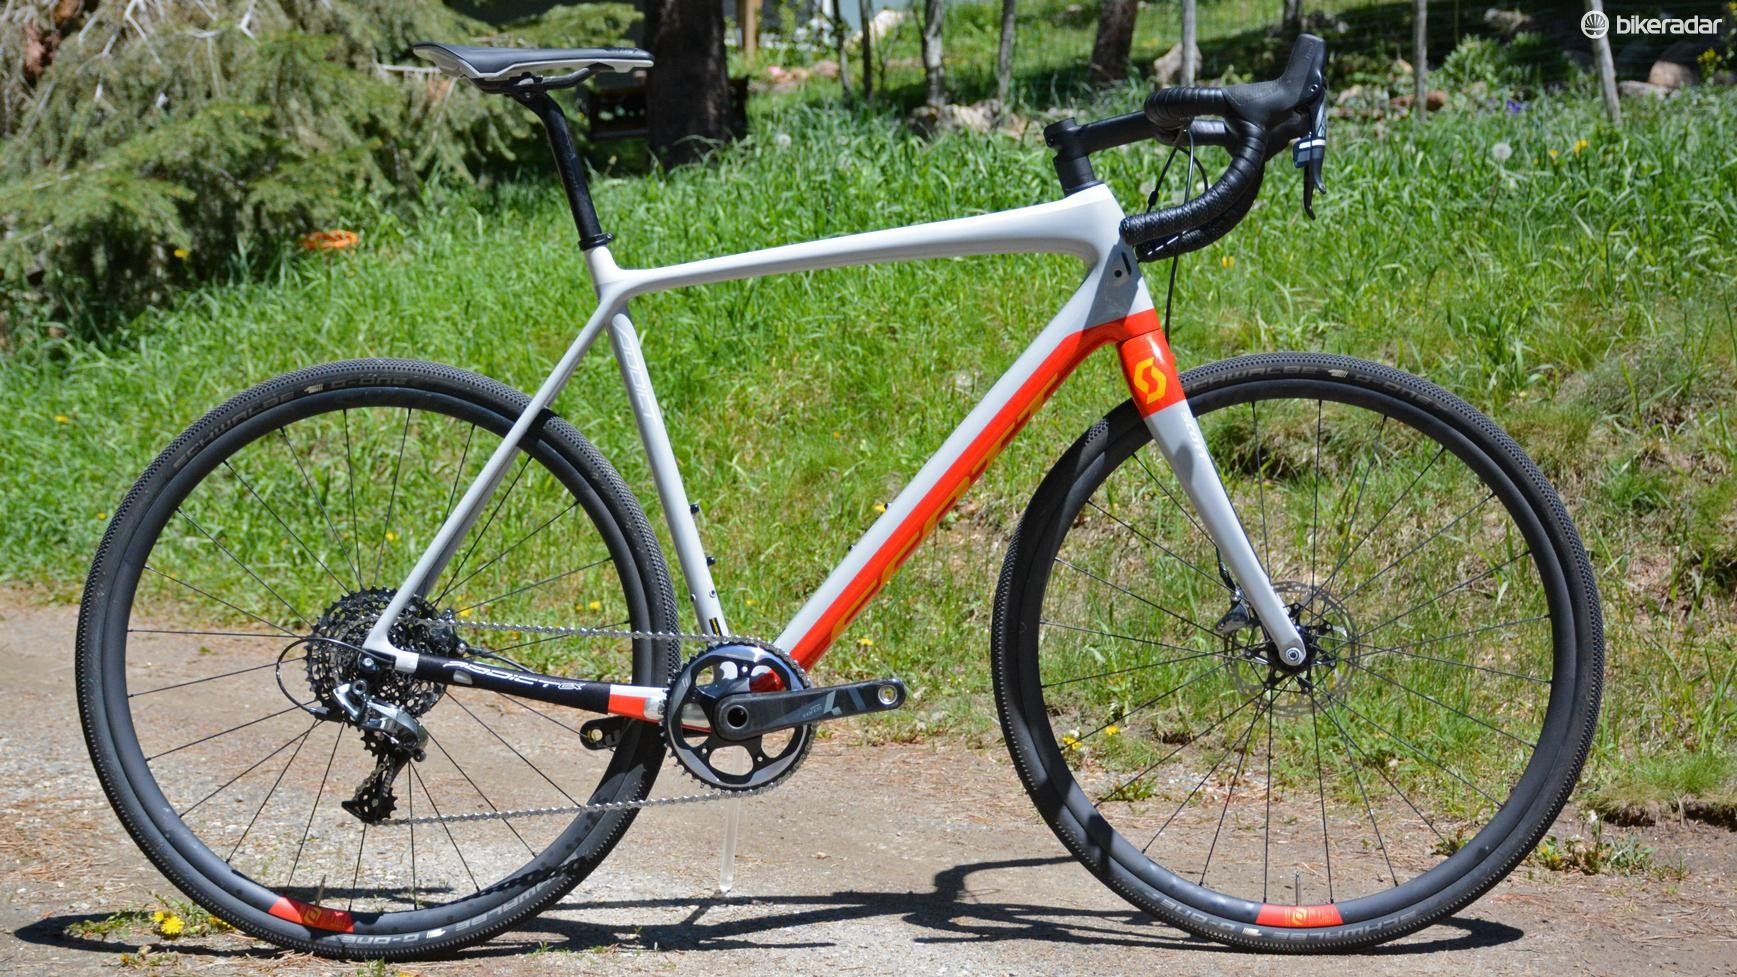 Scott's Addict Gravel 10 is, just like all its similarly-named siblings, addicted to speed